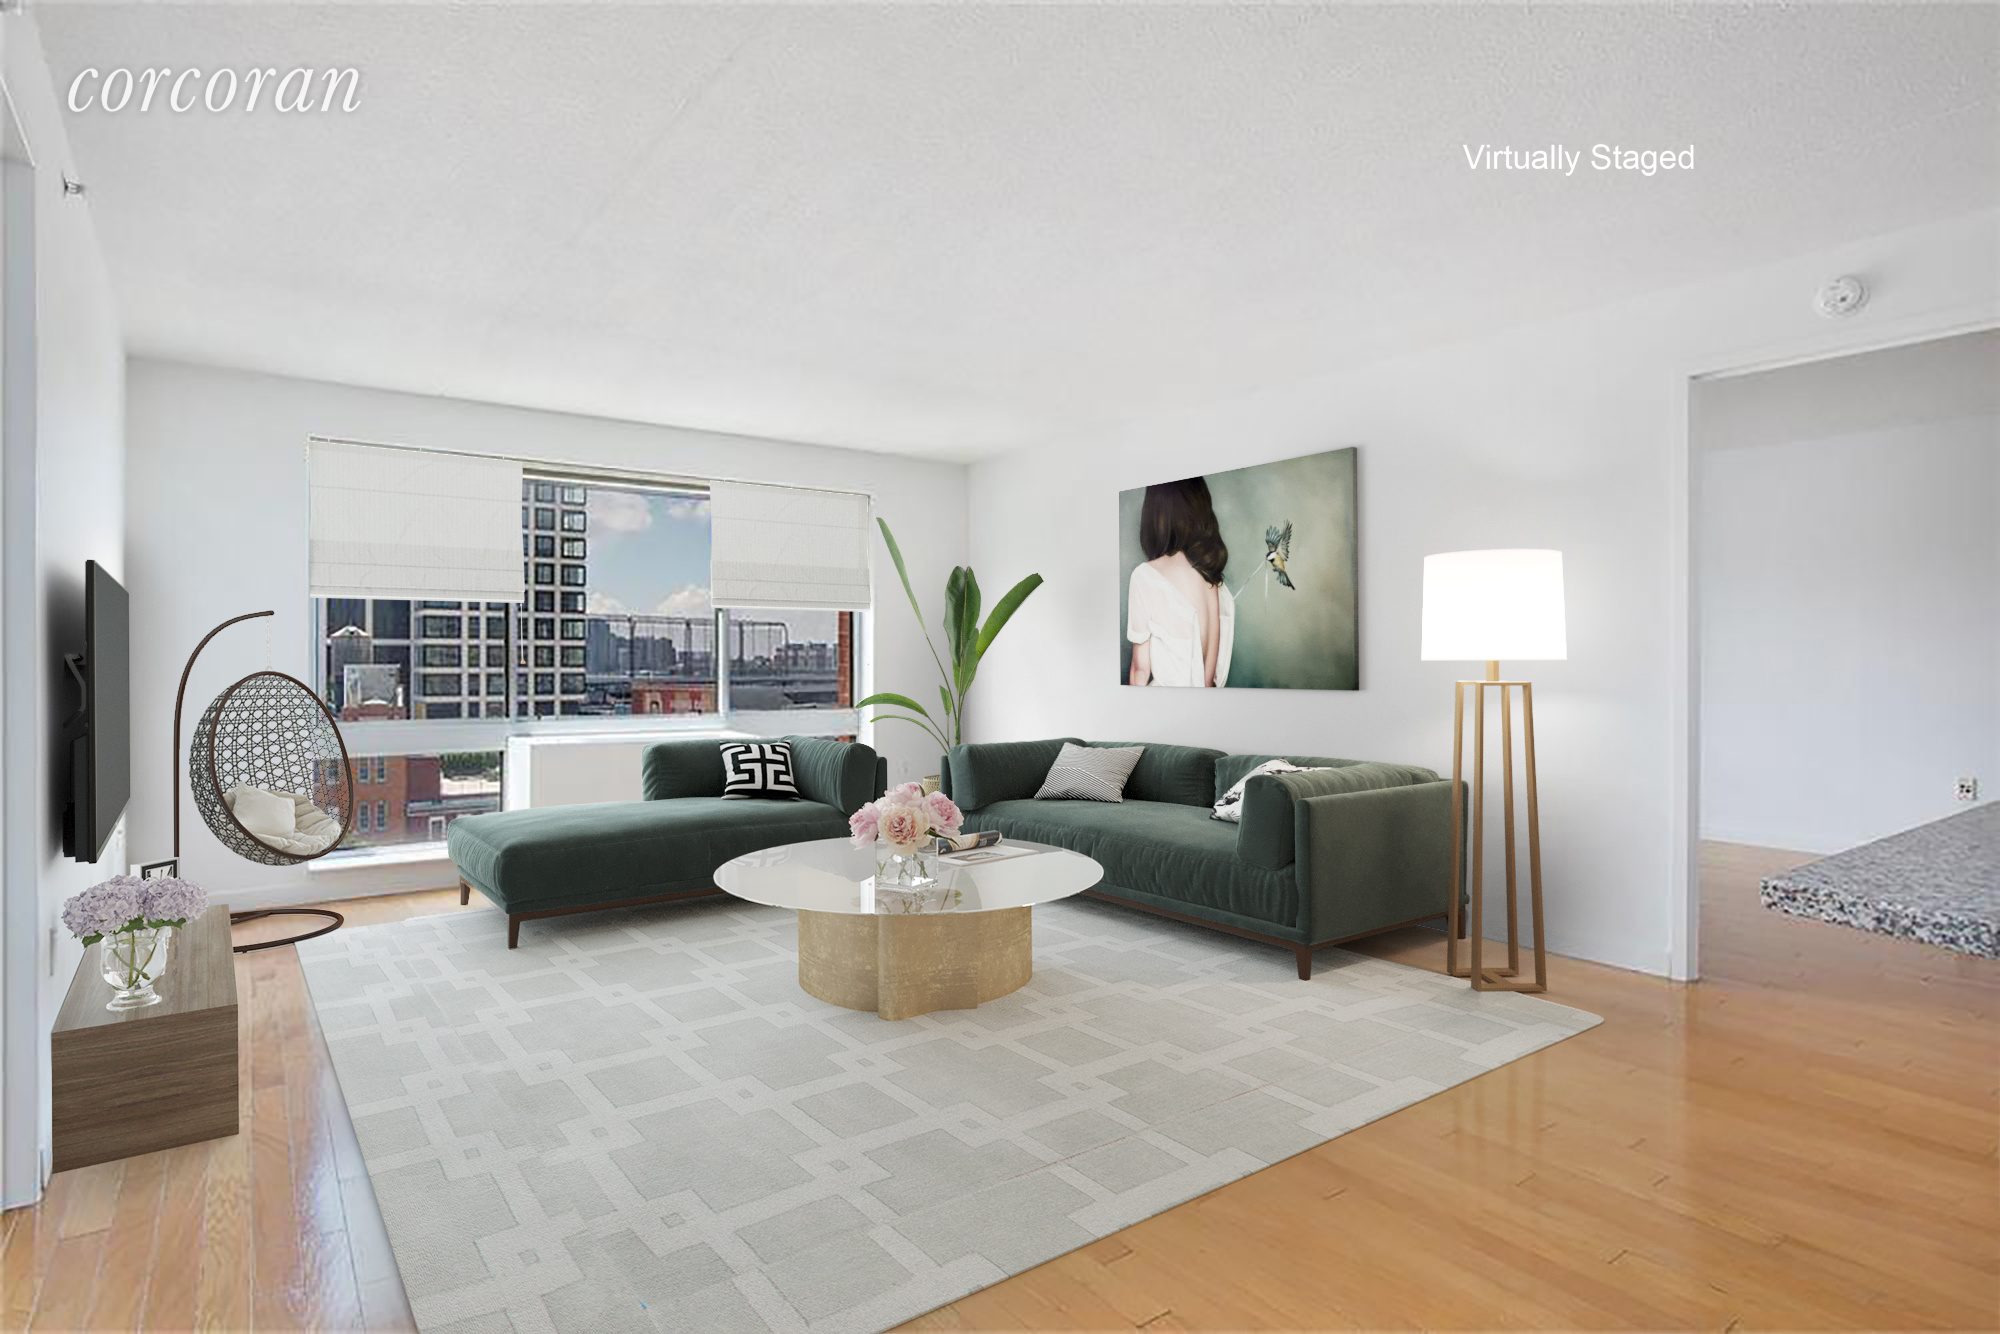 This perfectly situated 1,100 sq ft 2 bedroom 2 bathroom Chelsea condo is located just half a block from the Highline to the East and just half a block to Chelsea Piers and the Hudson River Park to the West. This wonderful apartment includes an open kitchen with stainless steel appliances, hardwood floors, plenty of closet space (including a walk-in master closet) and a washer/dryer in unit. The view provides tranquil city vistas including lovely light throughout the day. 555 West 23rd is a full-service condo and home to a residents' lounge with a fireplace, a common outdoor terrace, central laundry room and a large fitness facility.Please note: There is a fee of $3,000Available June 15th, 2020